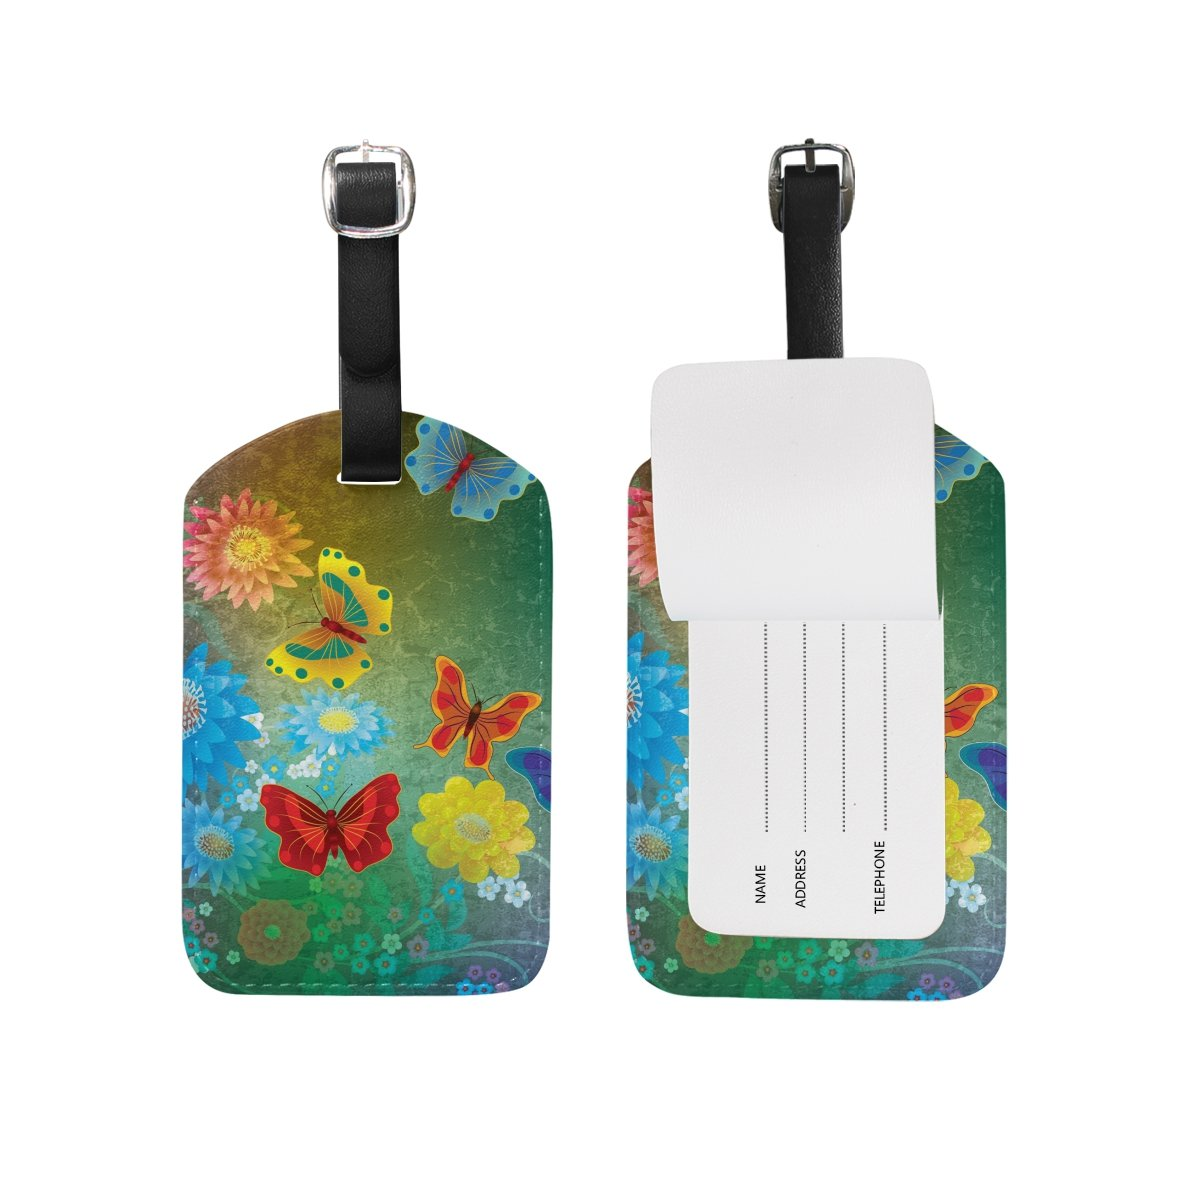 Art Butterfly Leather Cruise Travel USA Luggage Tags Card Bag ID Label (2Pcs)